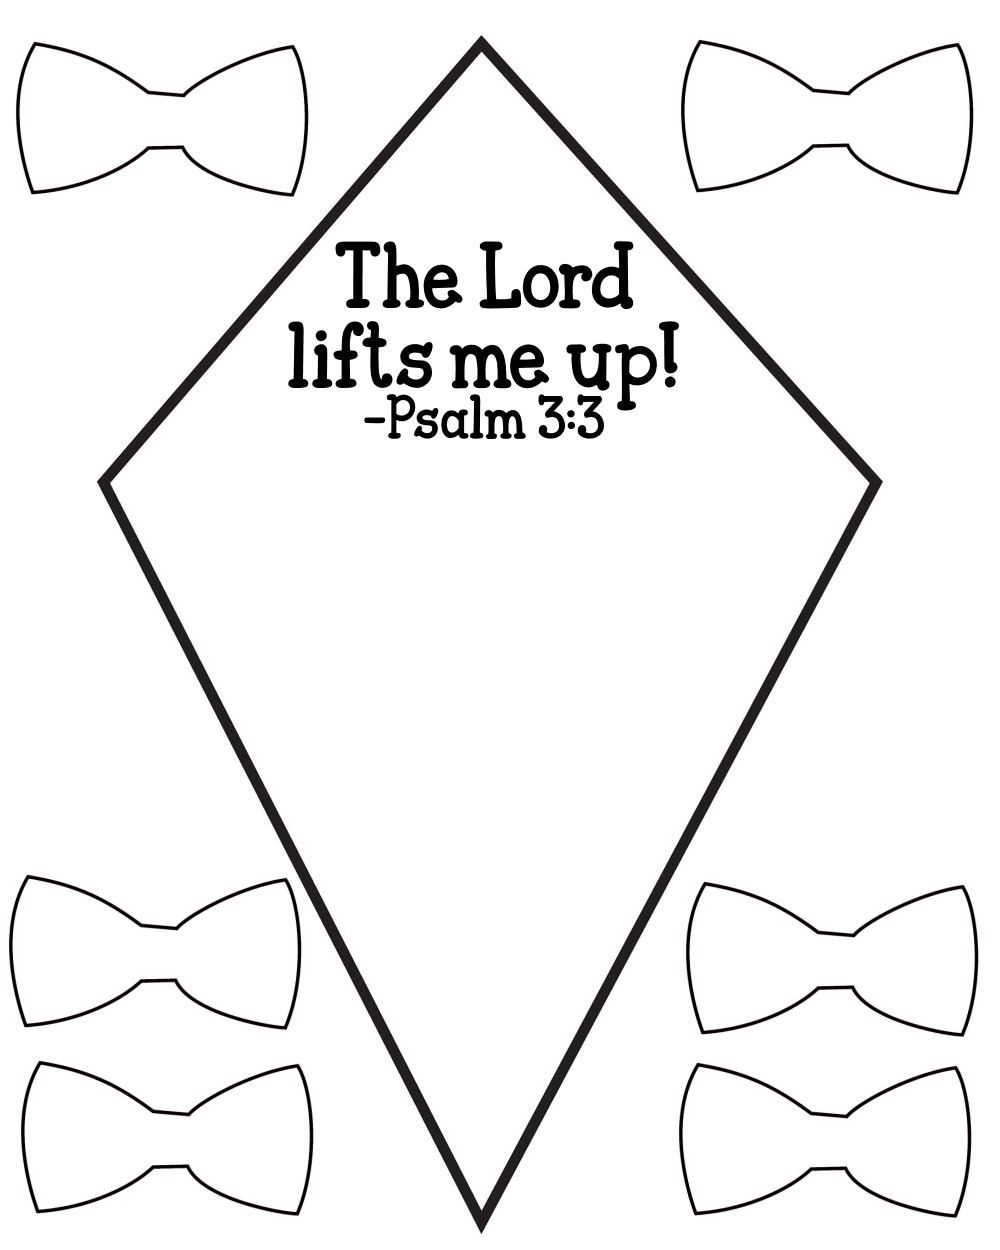 Free Psalm 3:3 Kids Bible Lesson Activity Printables - Free Printable Sunday School Crafts